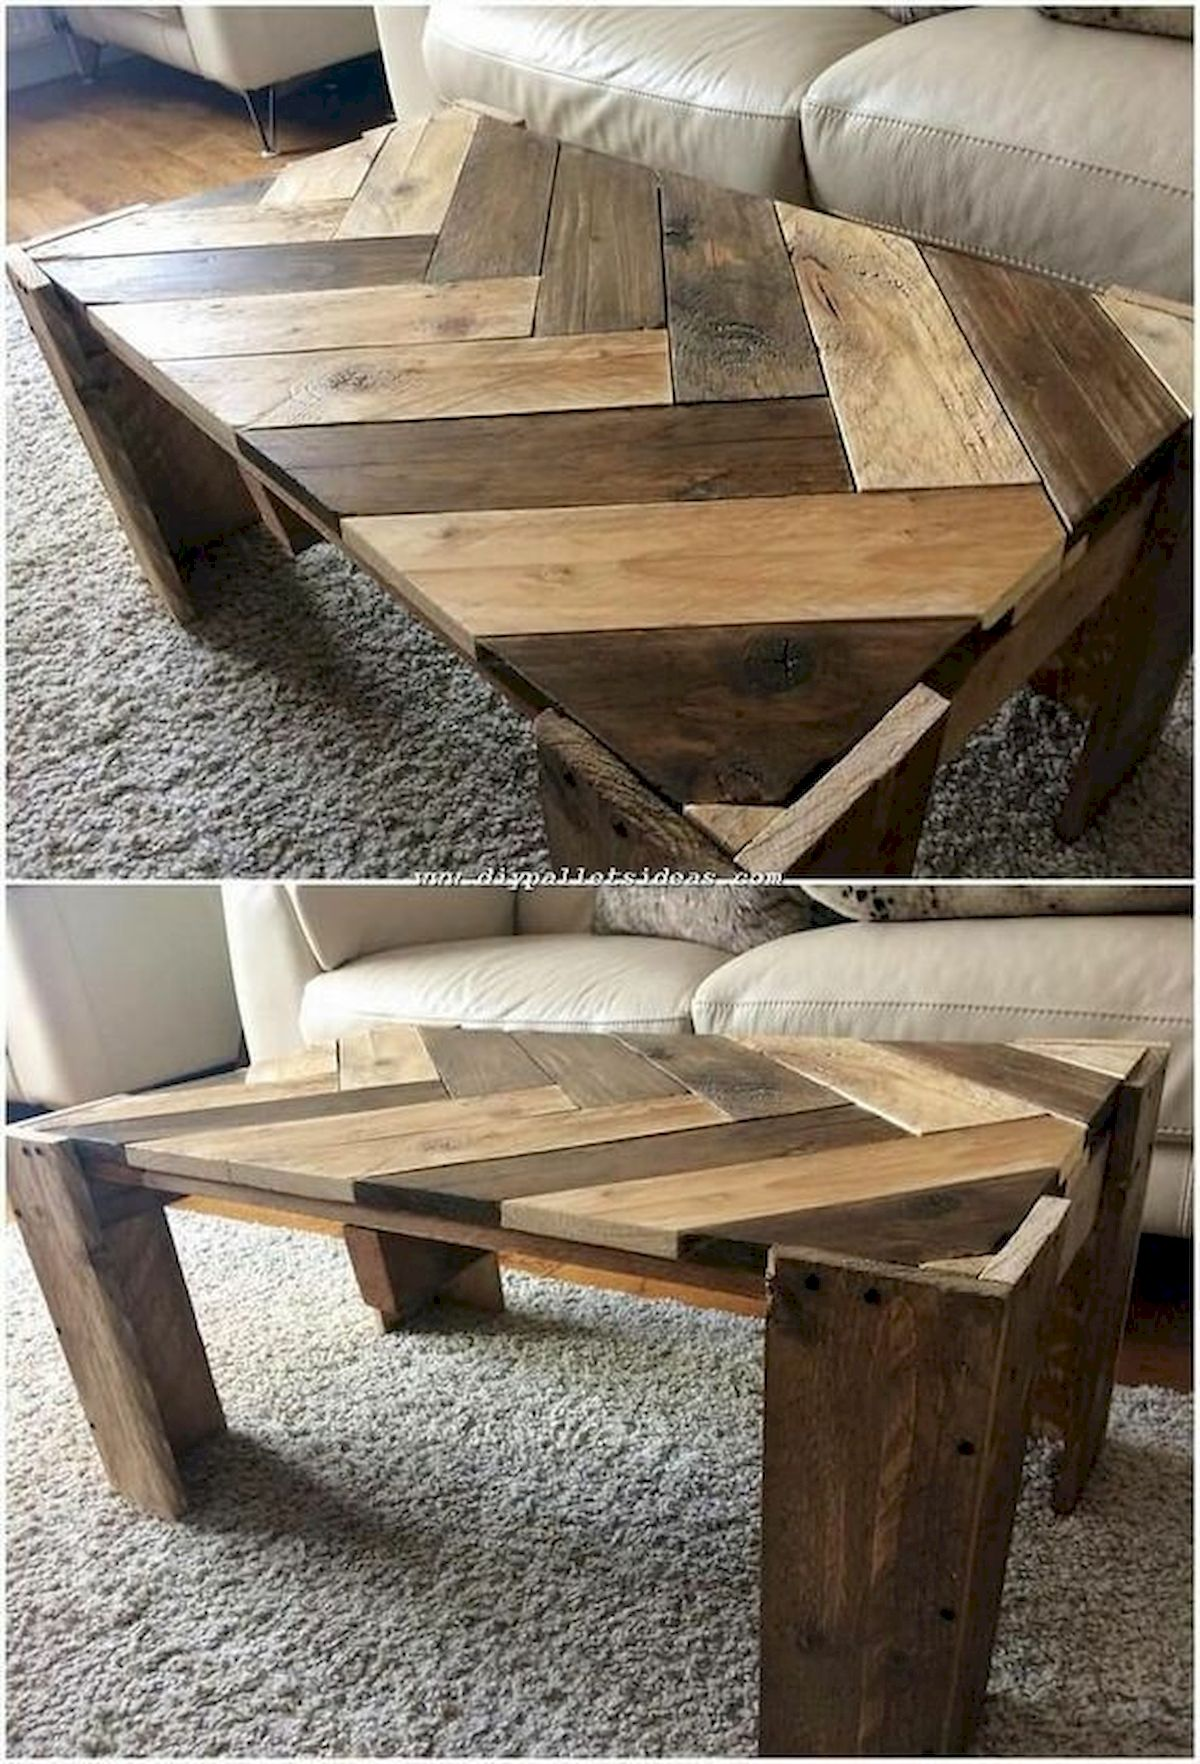 60 Easy DIY Wood Furniture Projects Ideas (48)